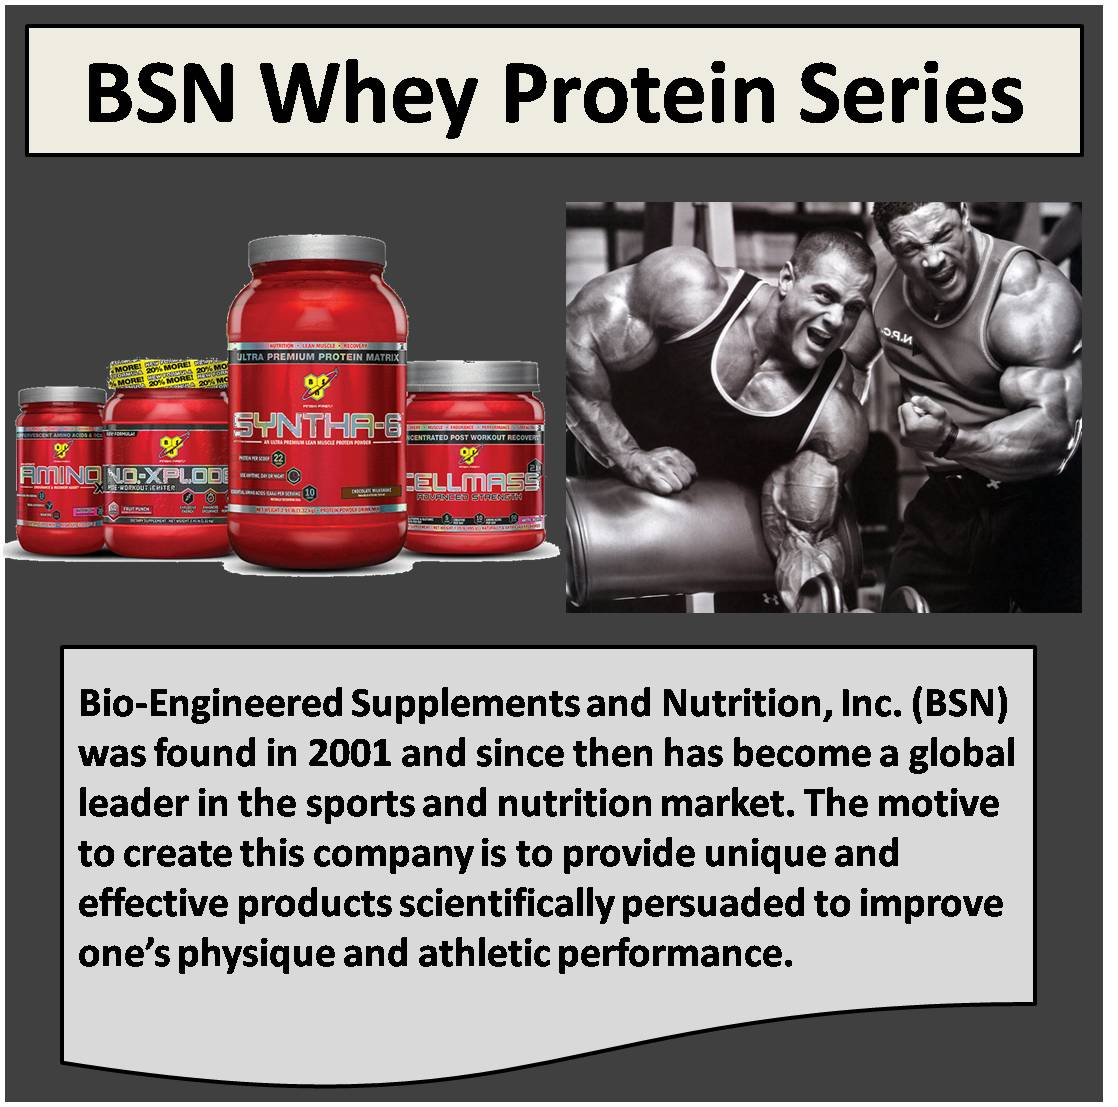 BSN Whey Protein Series